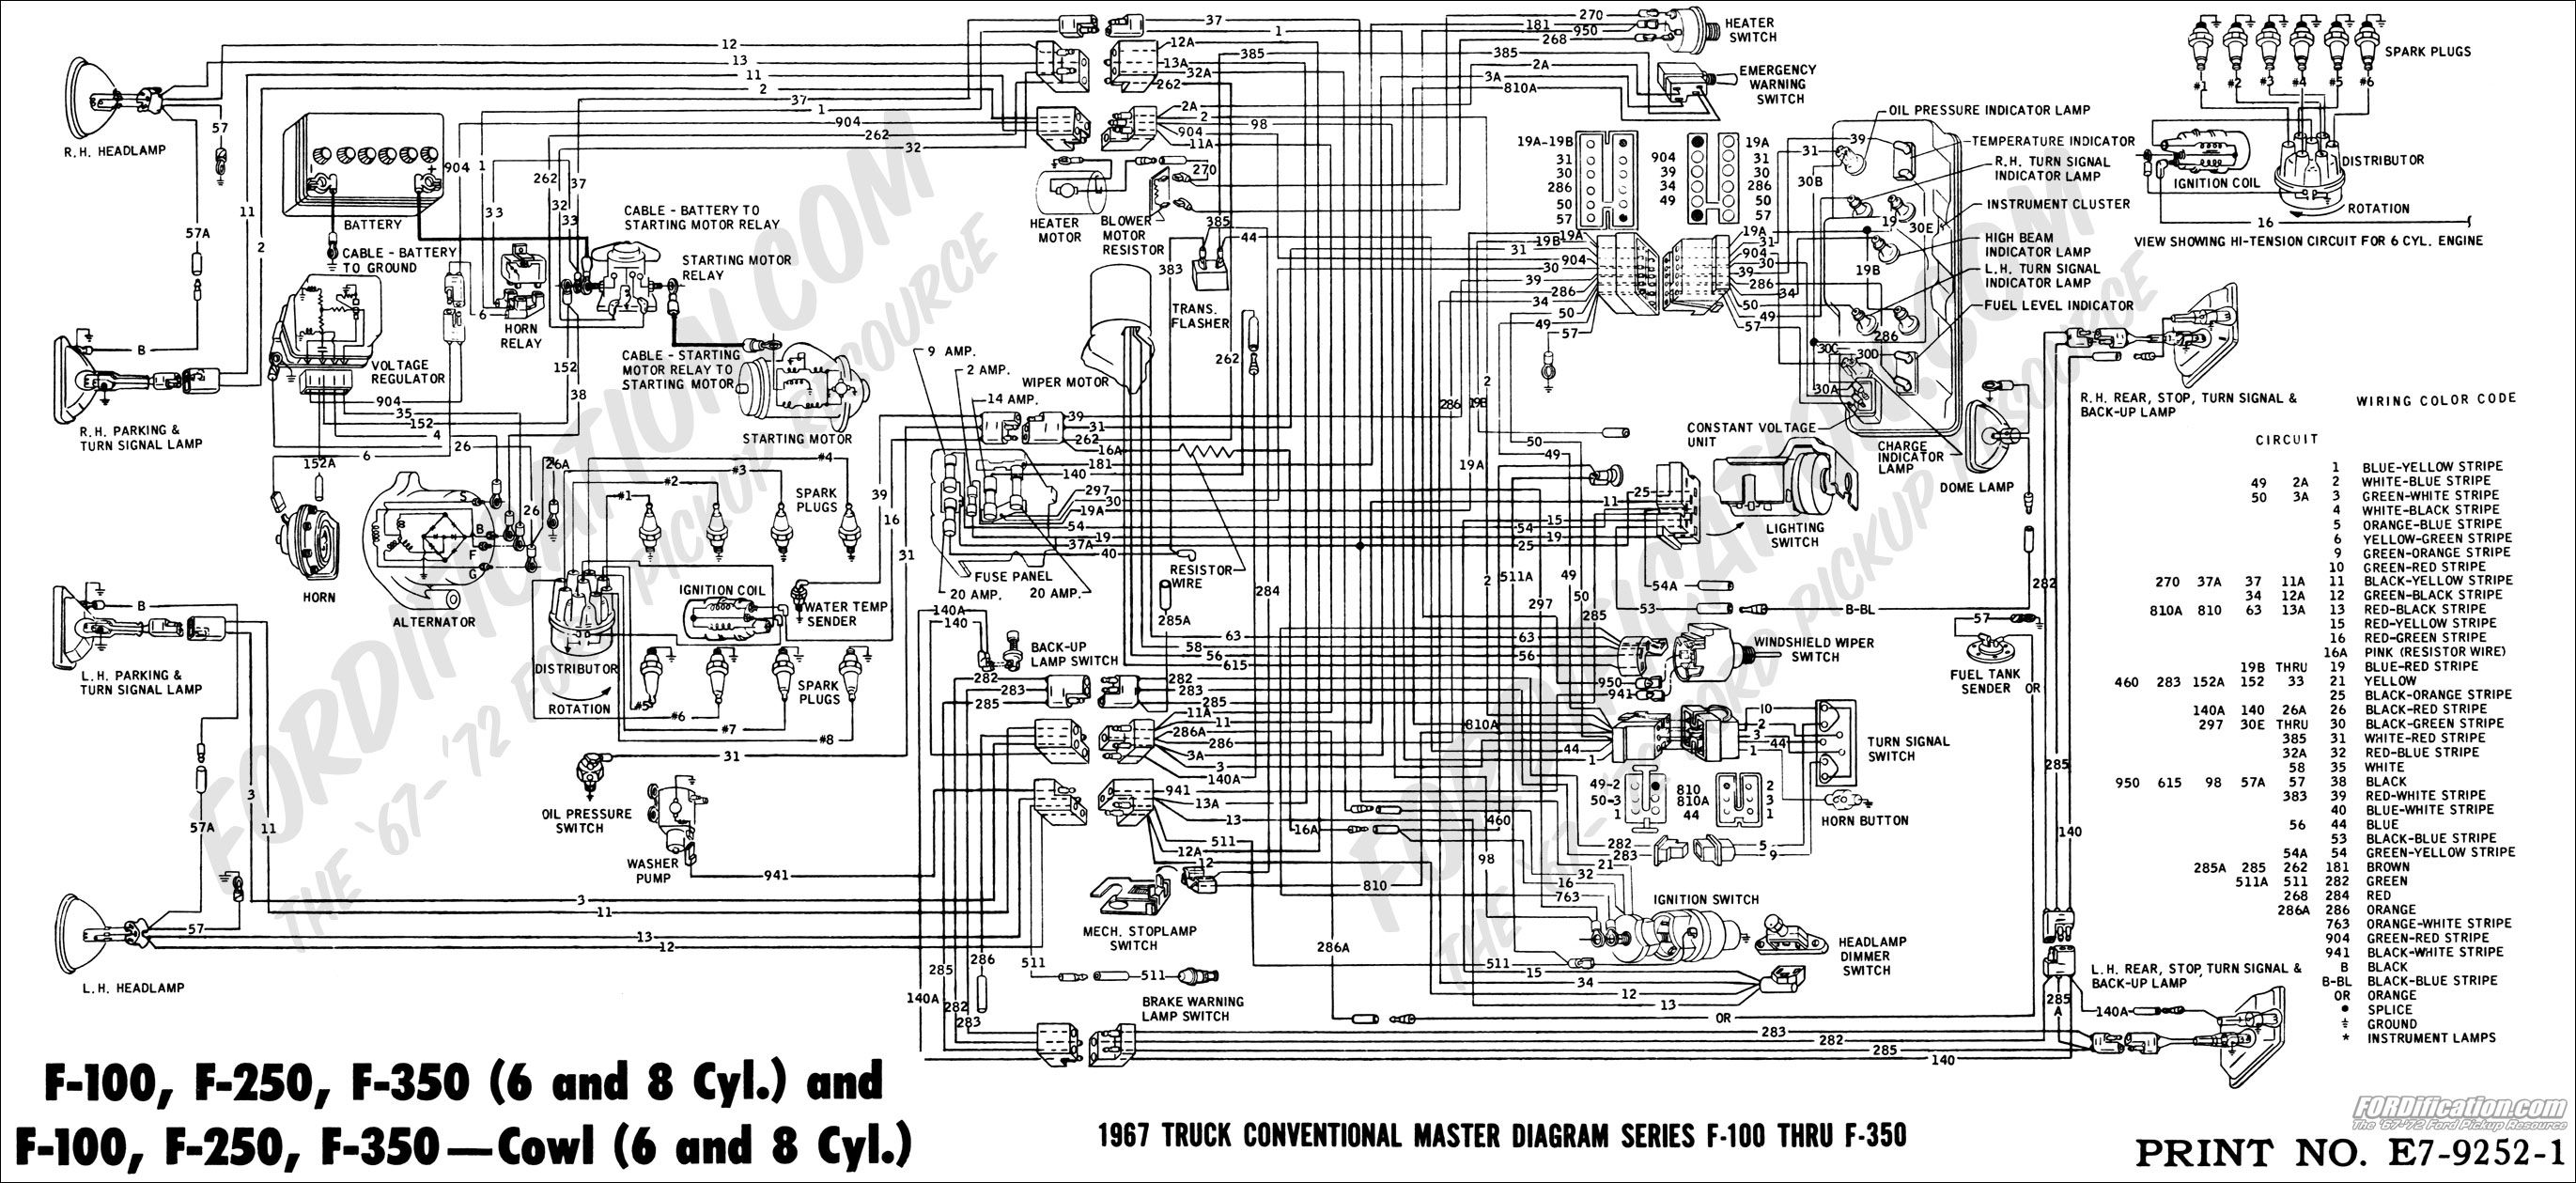 8e608320d8e6c71ff5bbdb2efdd7ada1 ford truck technical drawings and schematics section h wiring 1965 ford f100 dash wiring diagram at gsmx.co